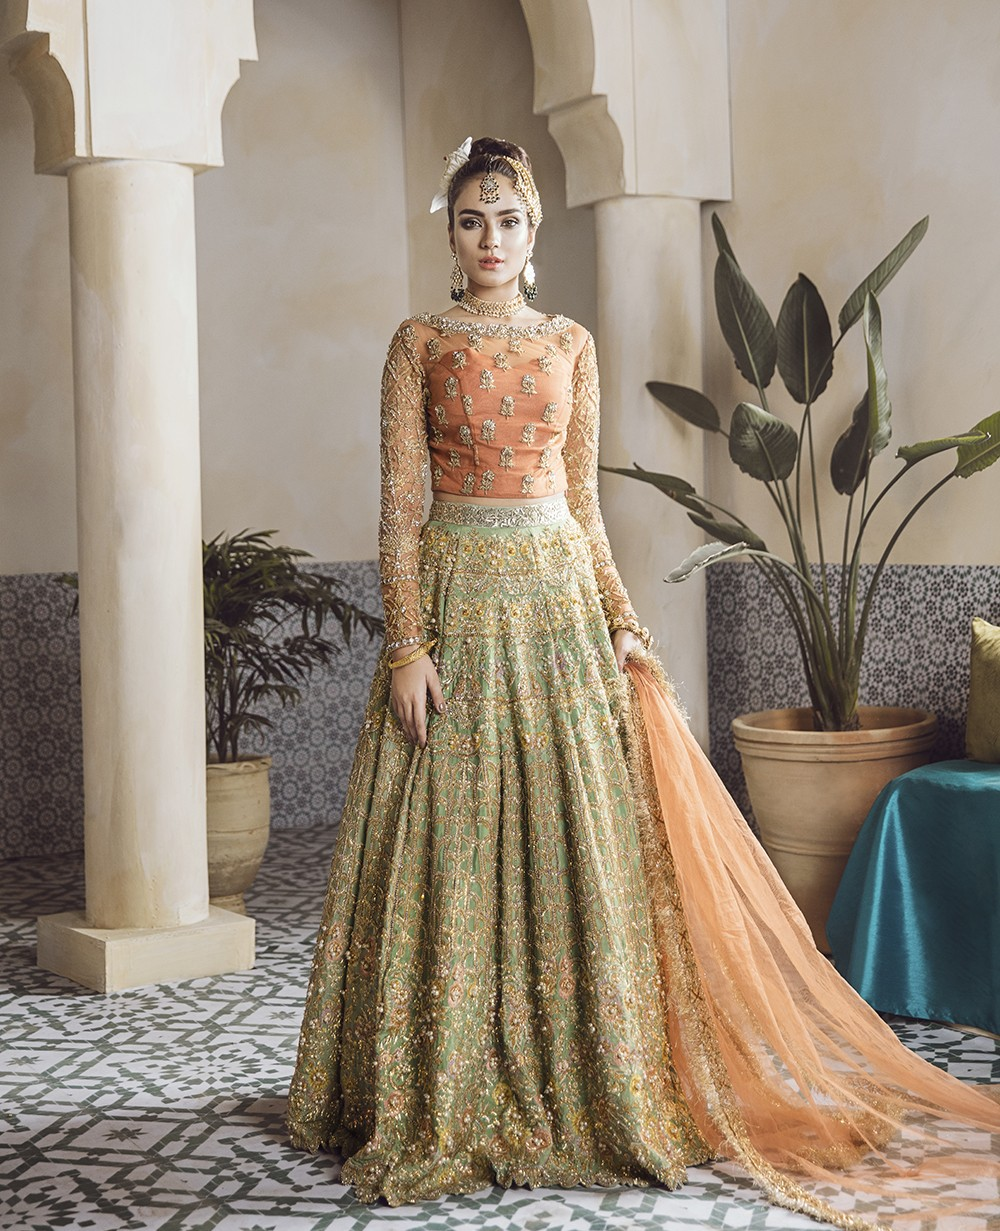 0a1f387d674 pakistani wedding dresses for bride s sister - Online Shopping in Pakistan